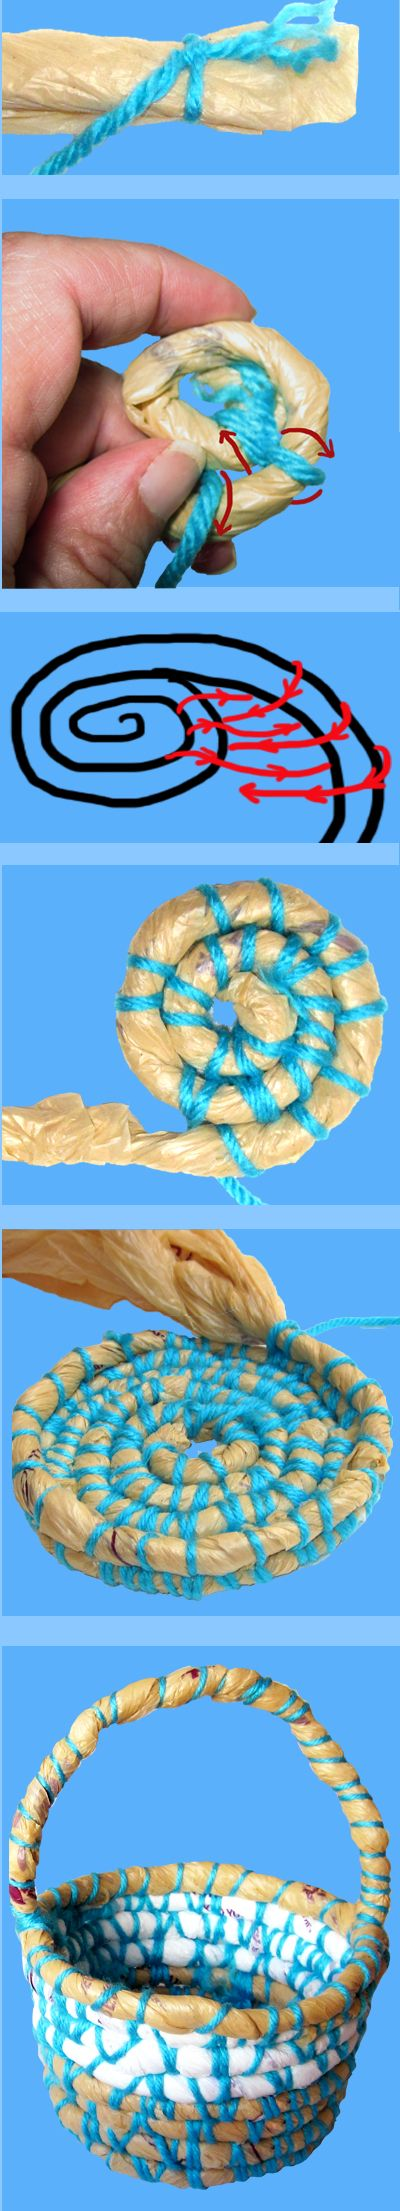 how to make baskets from recycled plastic bags   How To Make A Basket Out Of Recycled Plastic Bags - Mt Jibbaroo ...